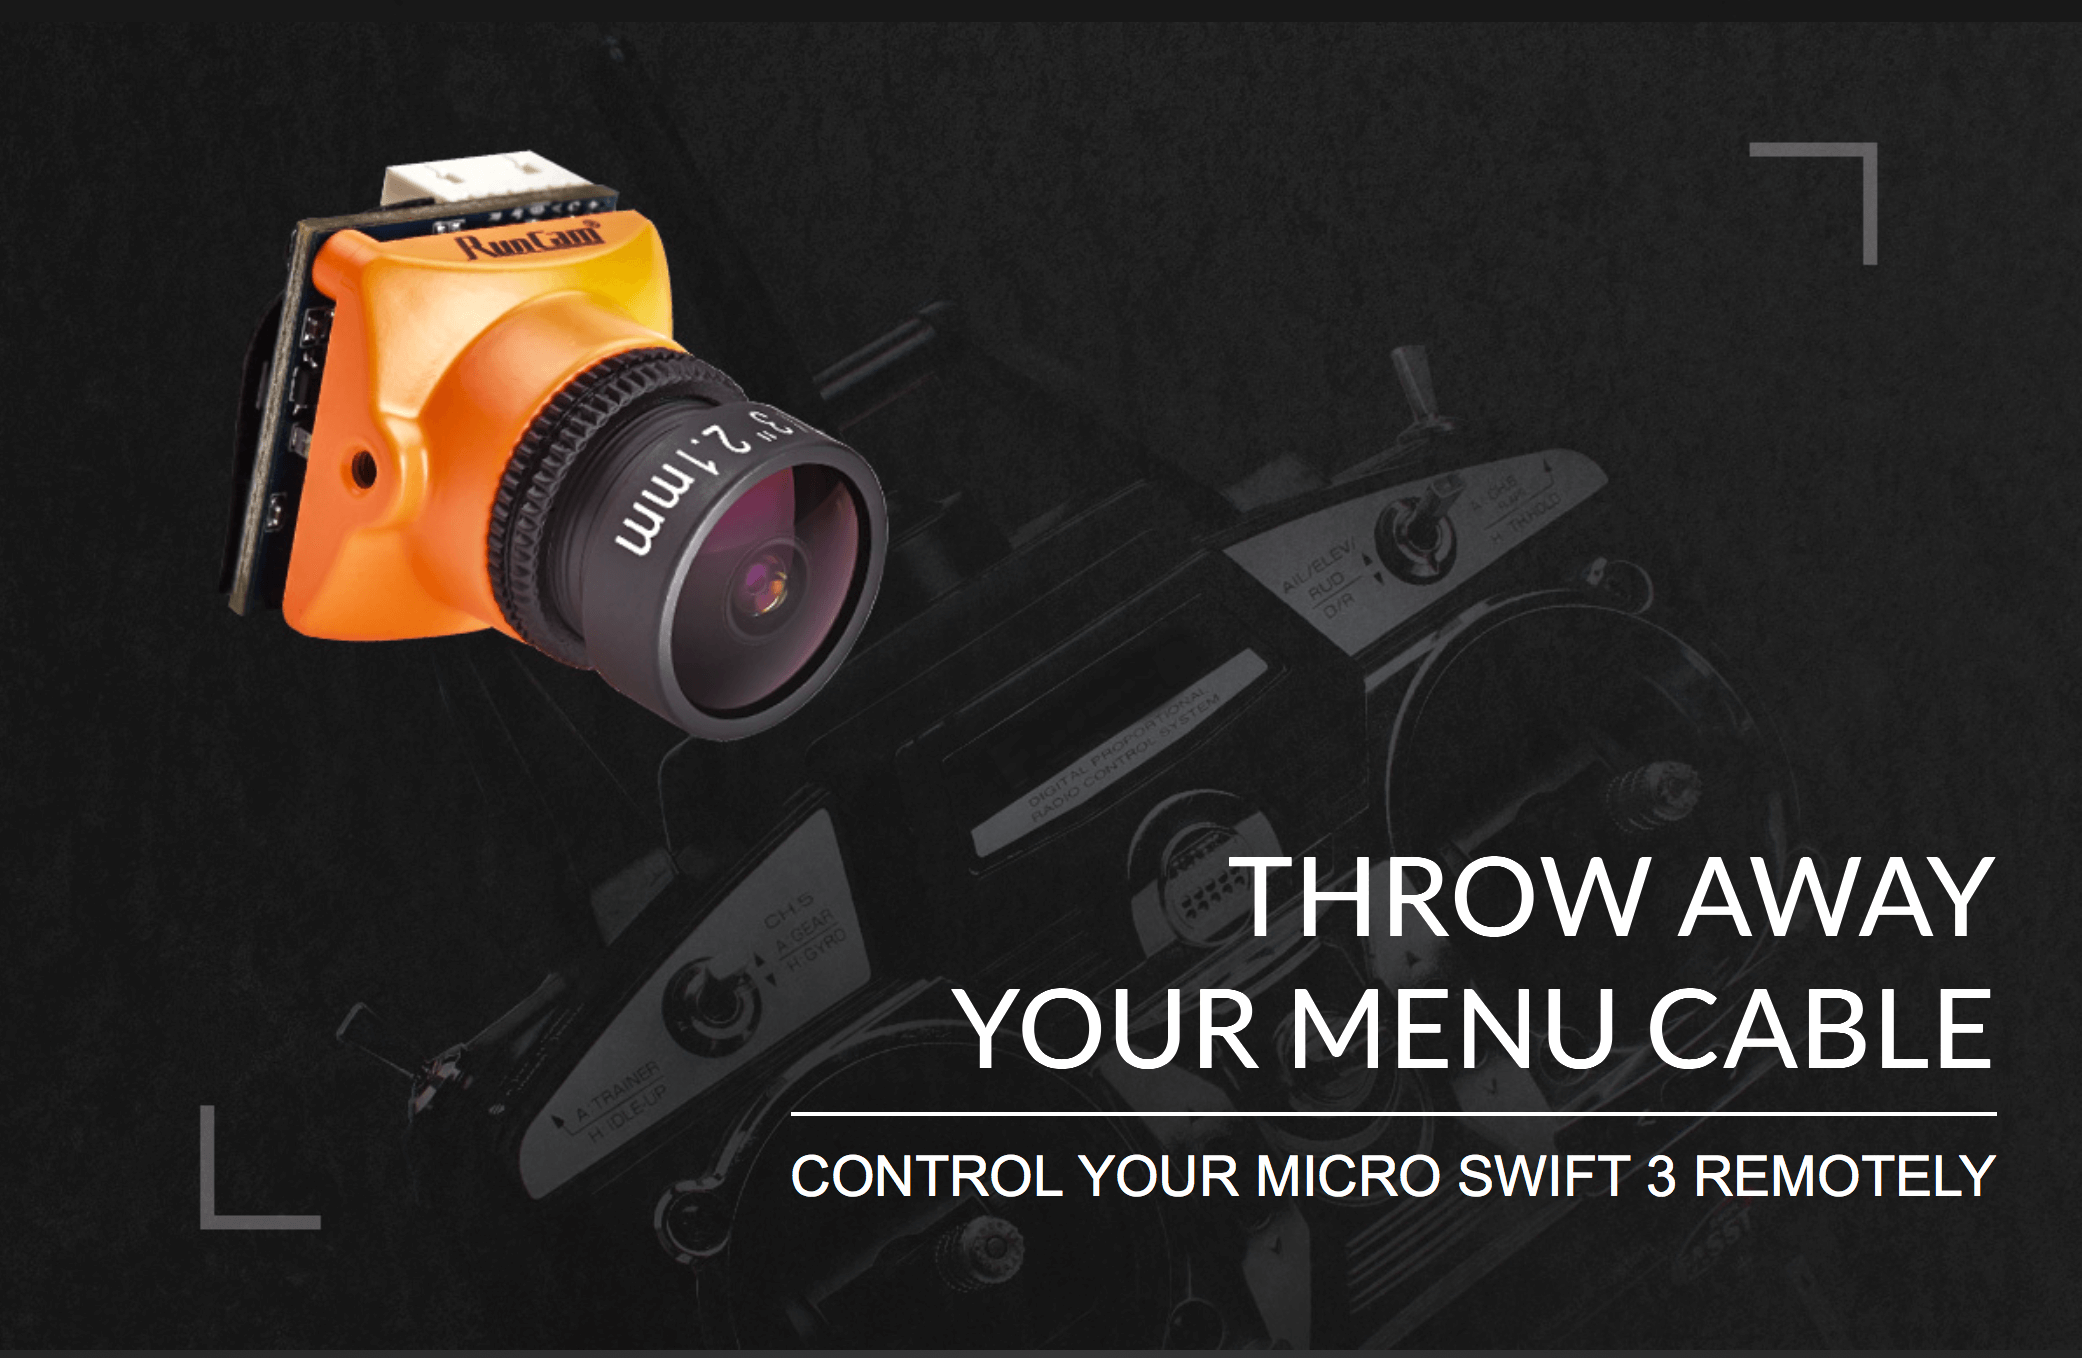 The runcam swift 3 has built in remote control so no menu cable needed